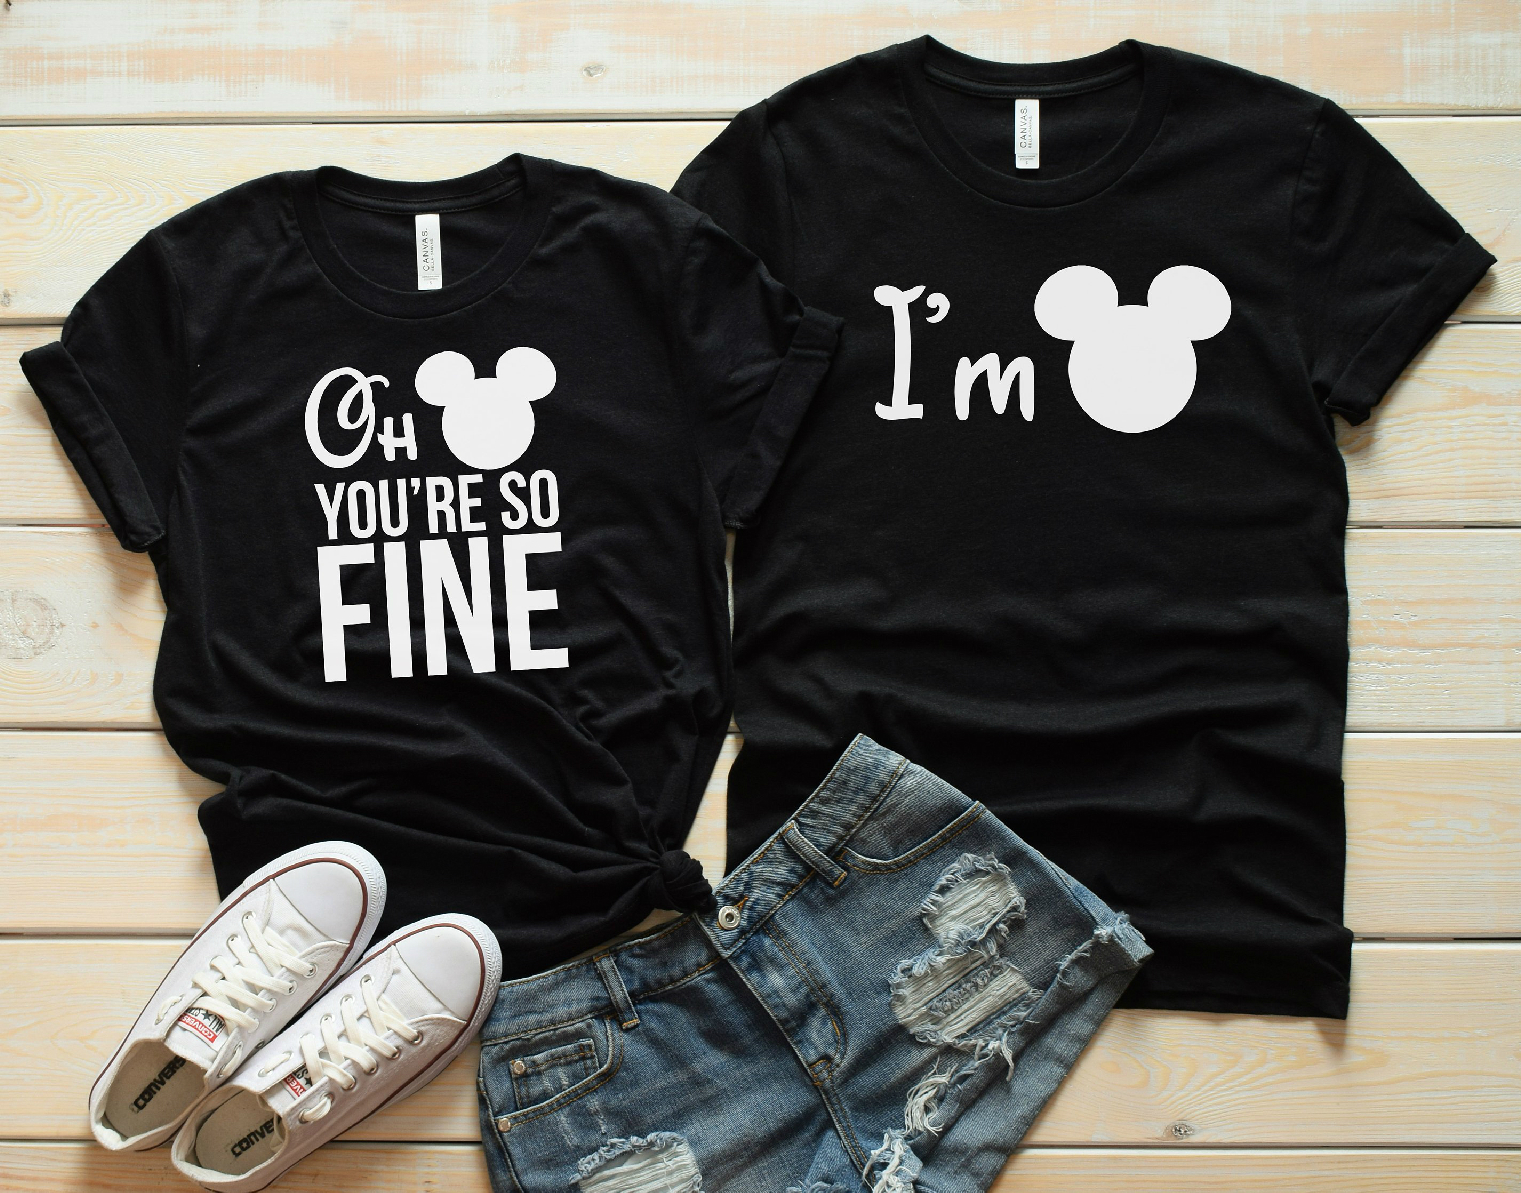 e3d476d5 2017 New Arrival Couples Shirt Mickey Minnie Two Sided Matching ...